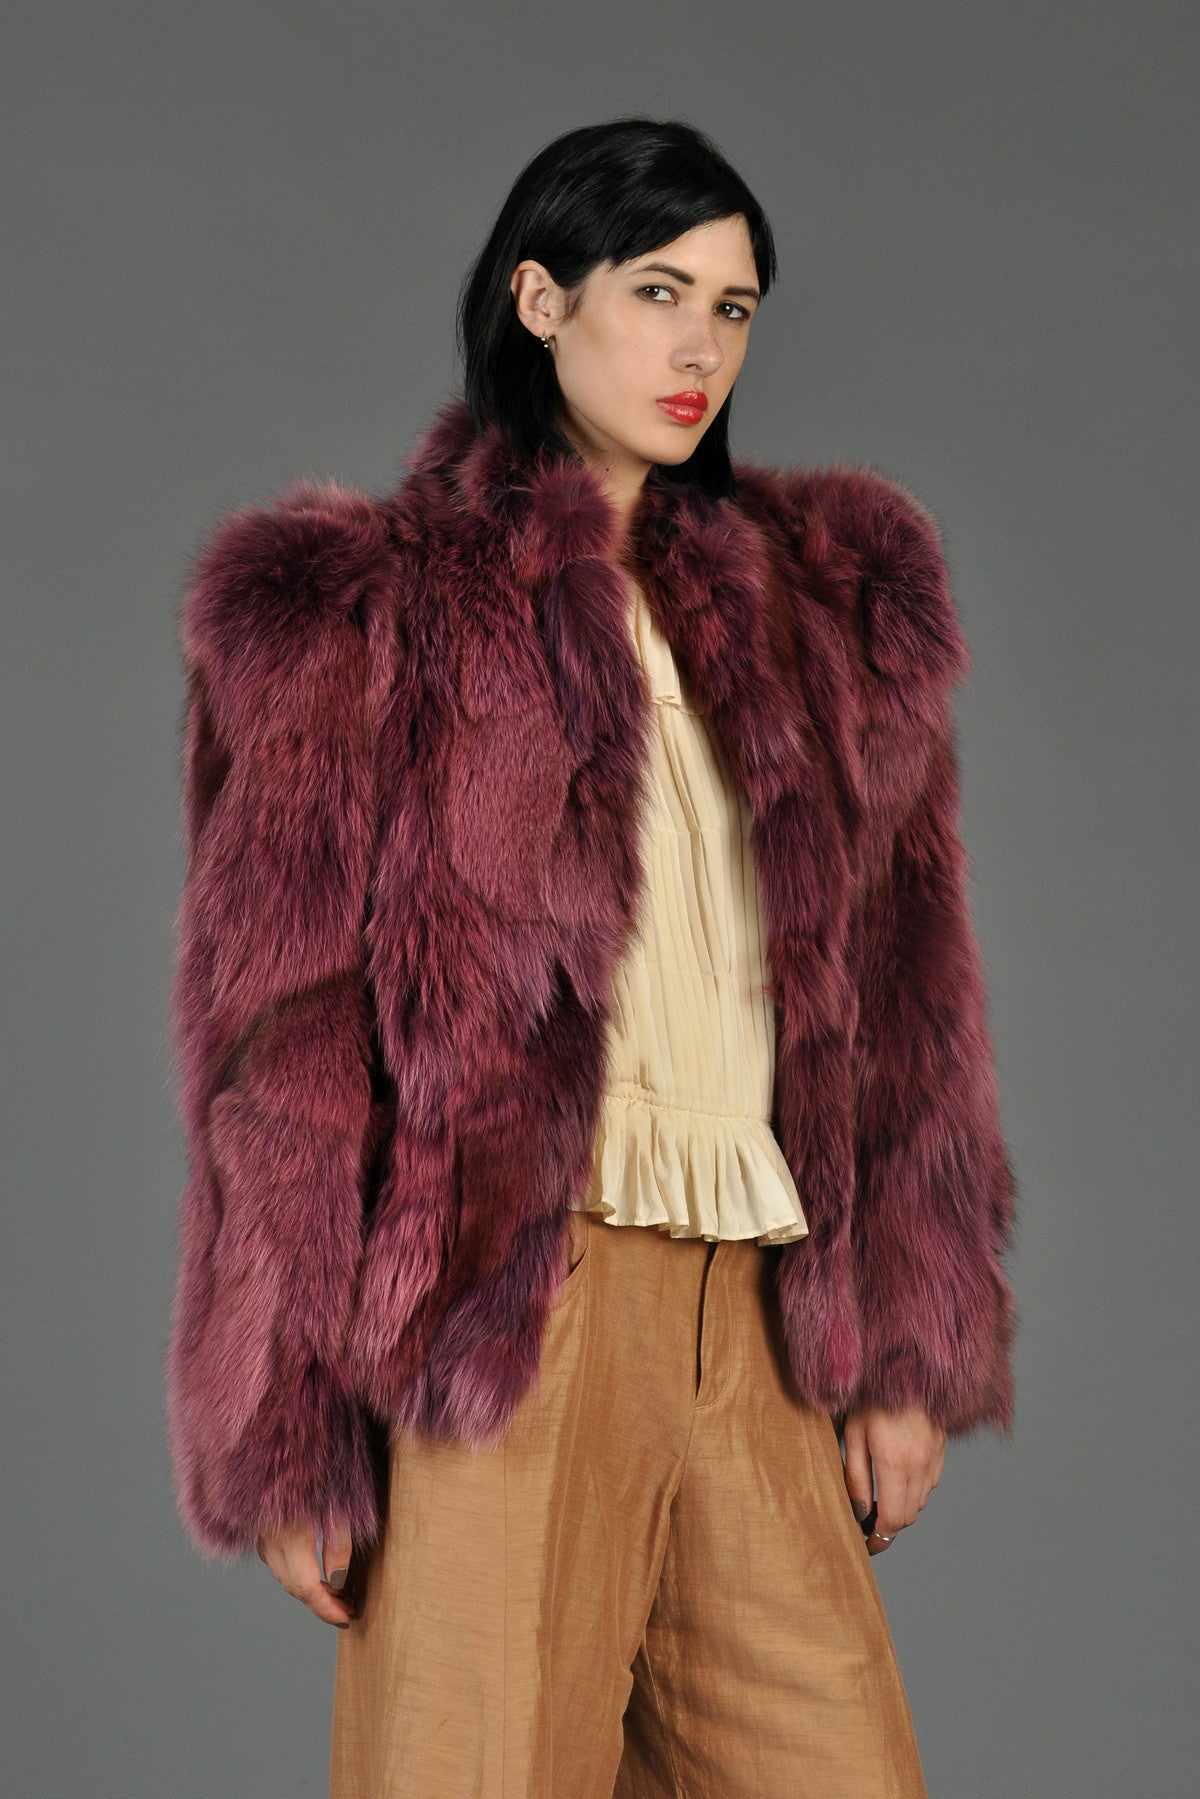 raspberry colored cropped fox fur coat  bustown modern - raspberry colored cropped fox fur coat